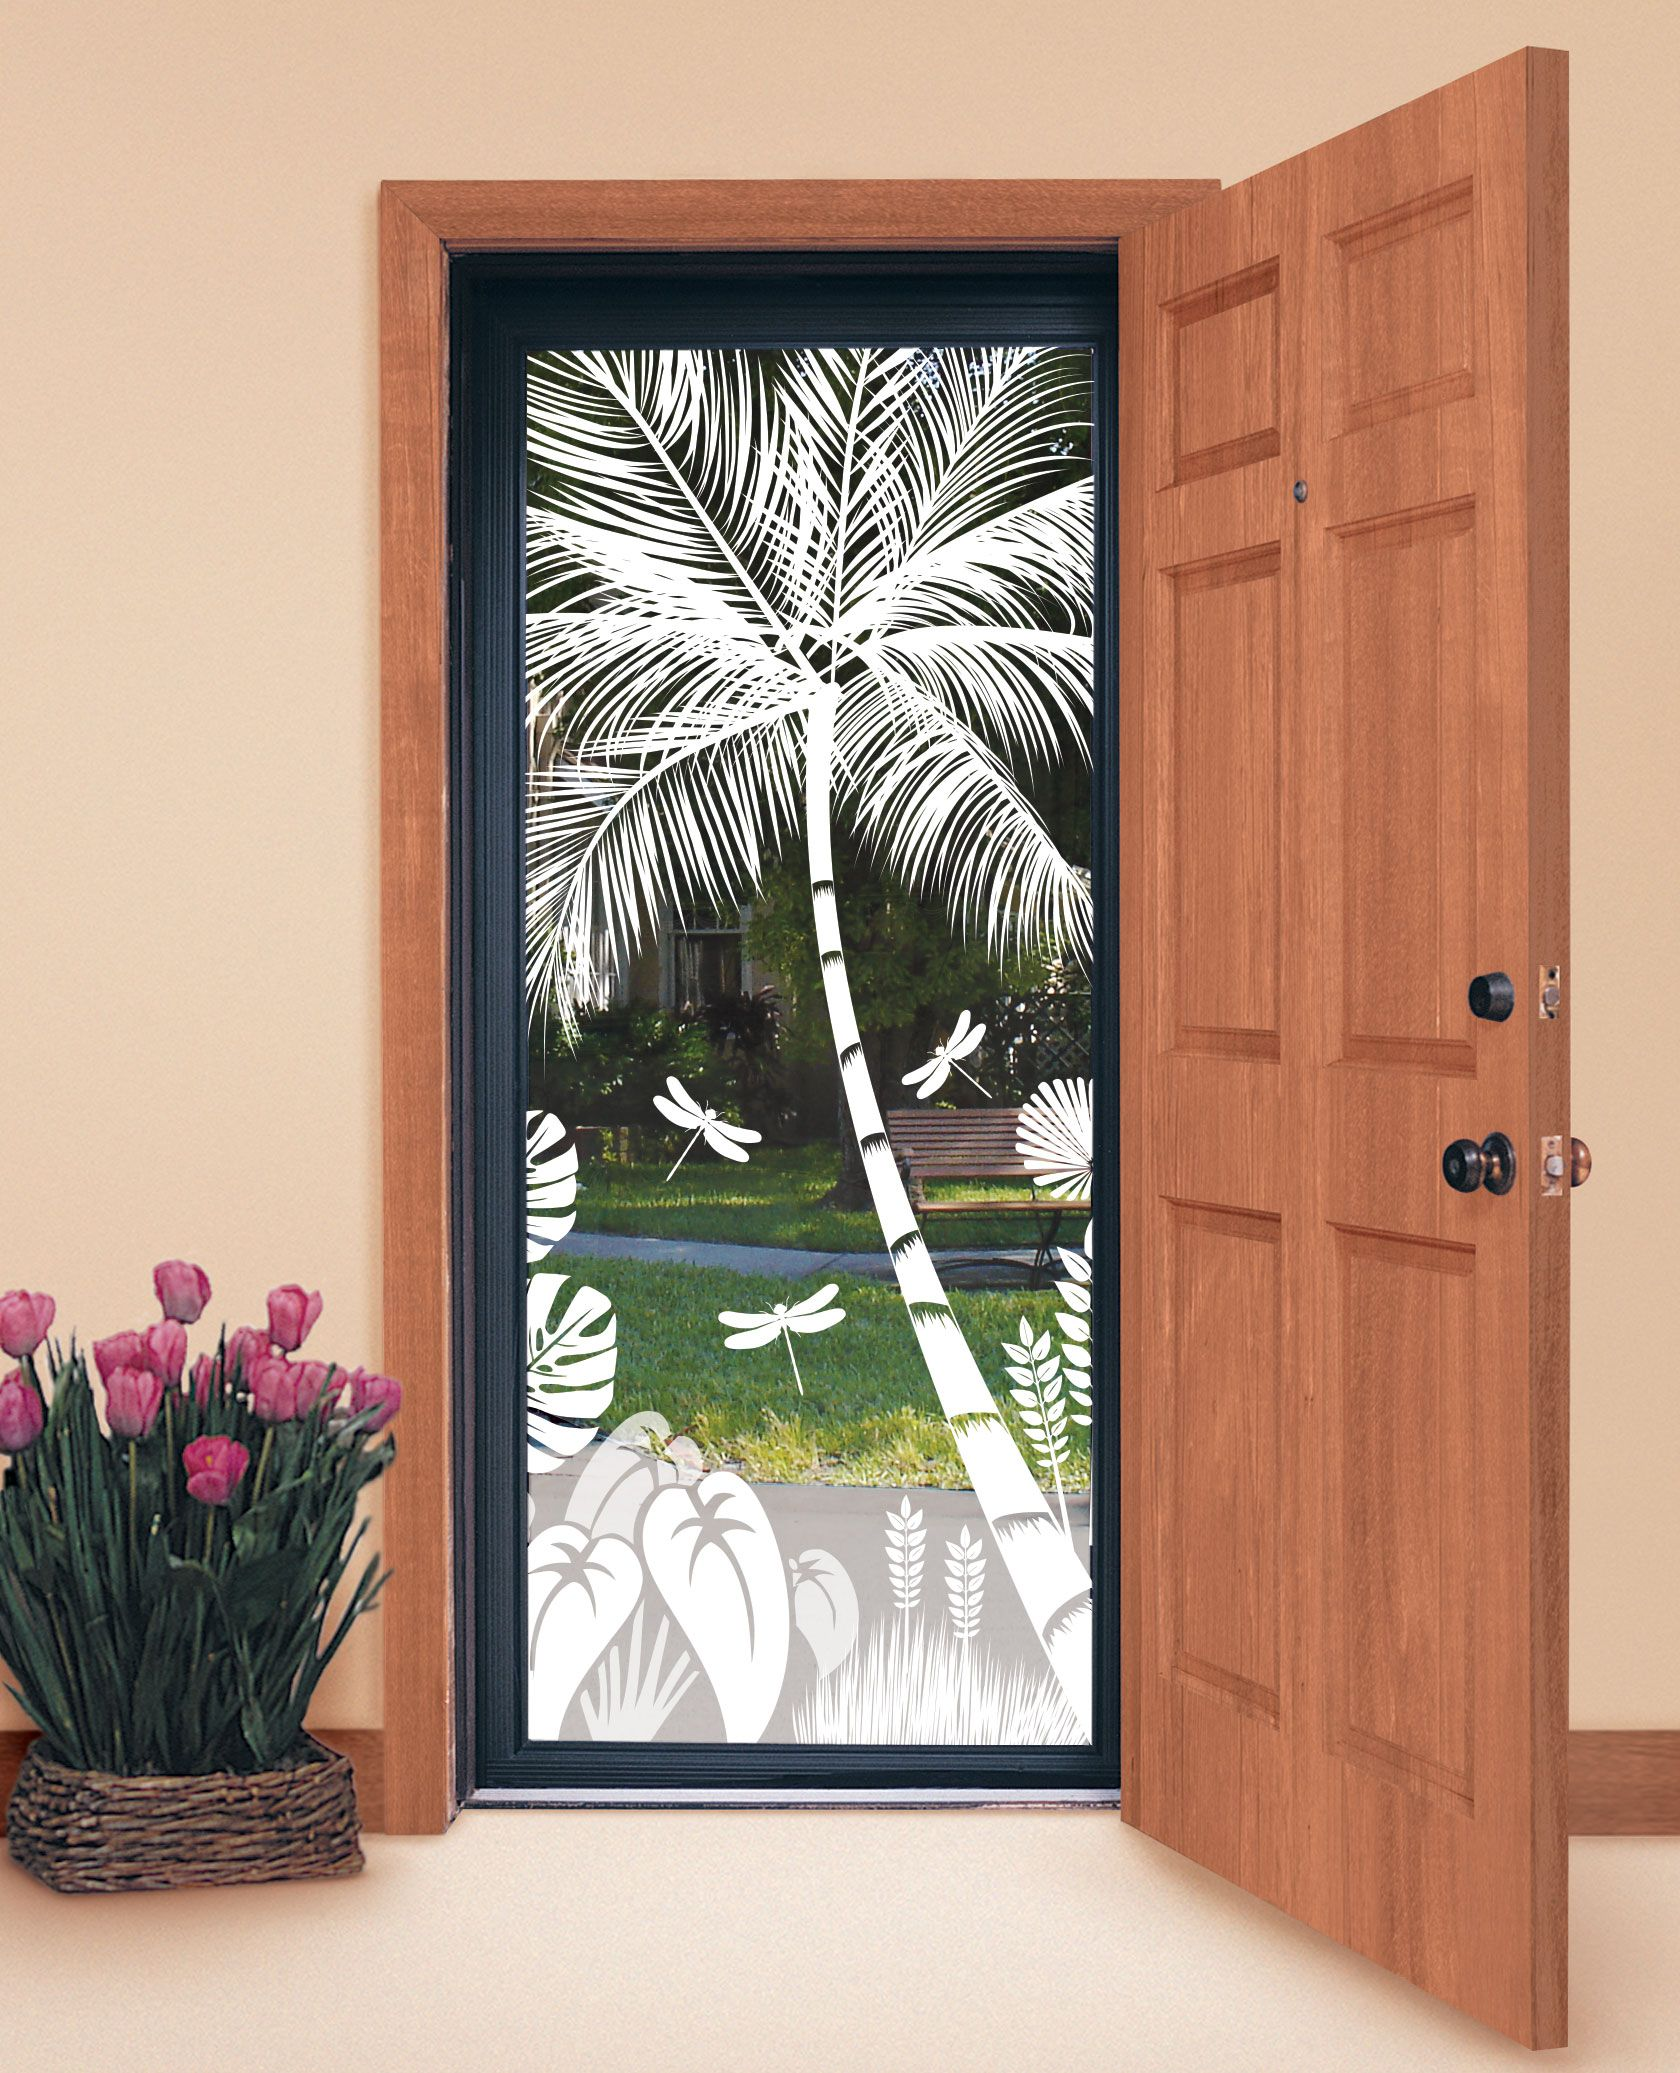 Design your own tropical etched glass windows and doors custom design your own tropical etched glass windows and doors planetlyrics Image collections